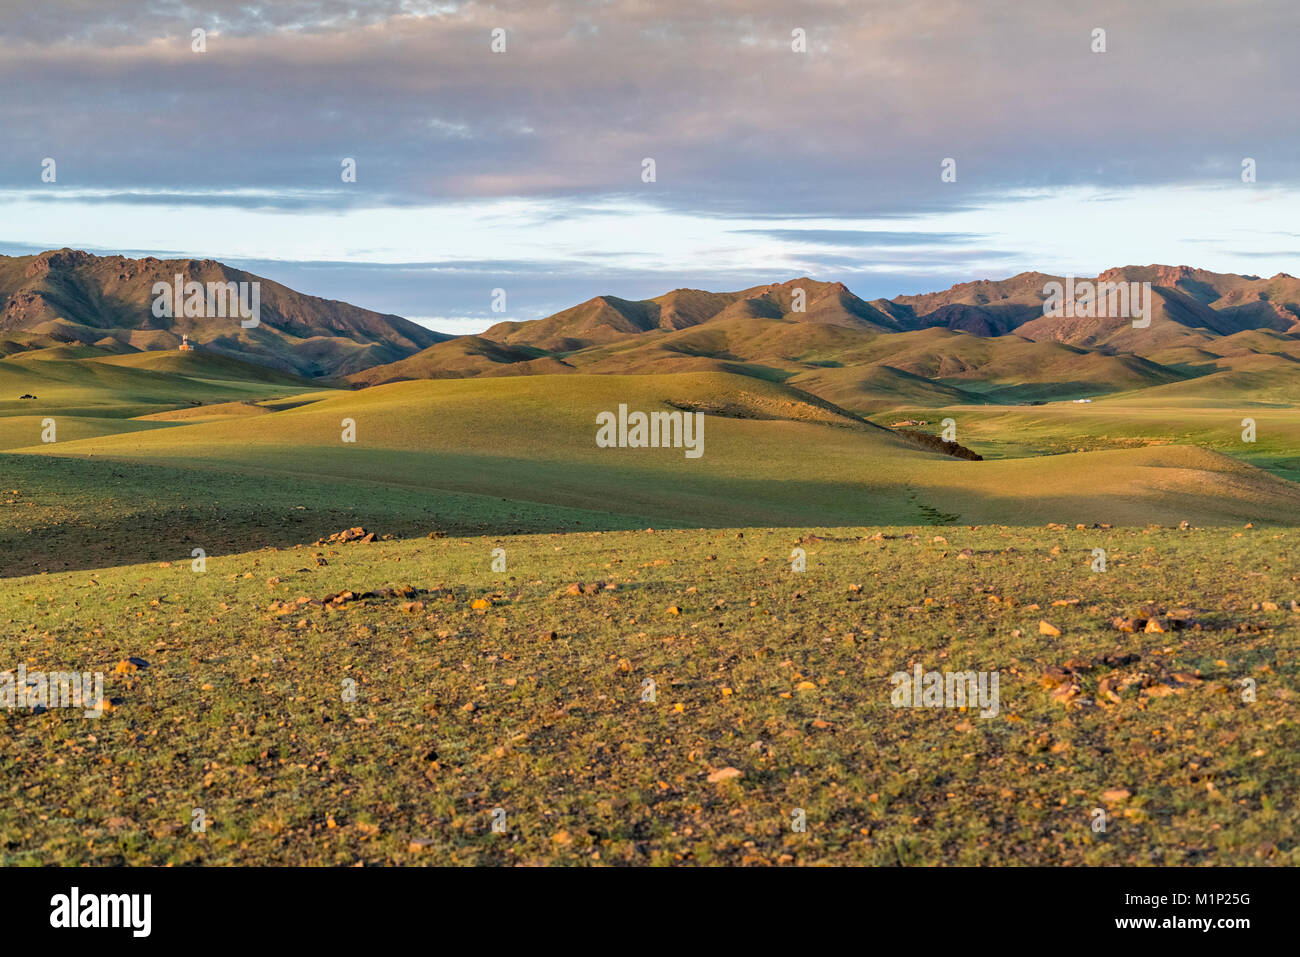 Hills and mountains, Bayandalai district, South Gobi province, Mongolia, Central Asia, Asia - Stock Image